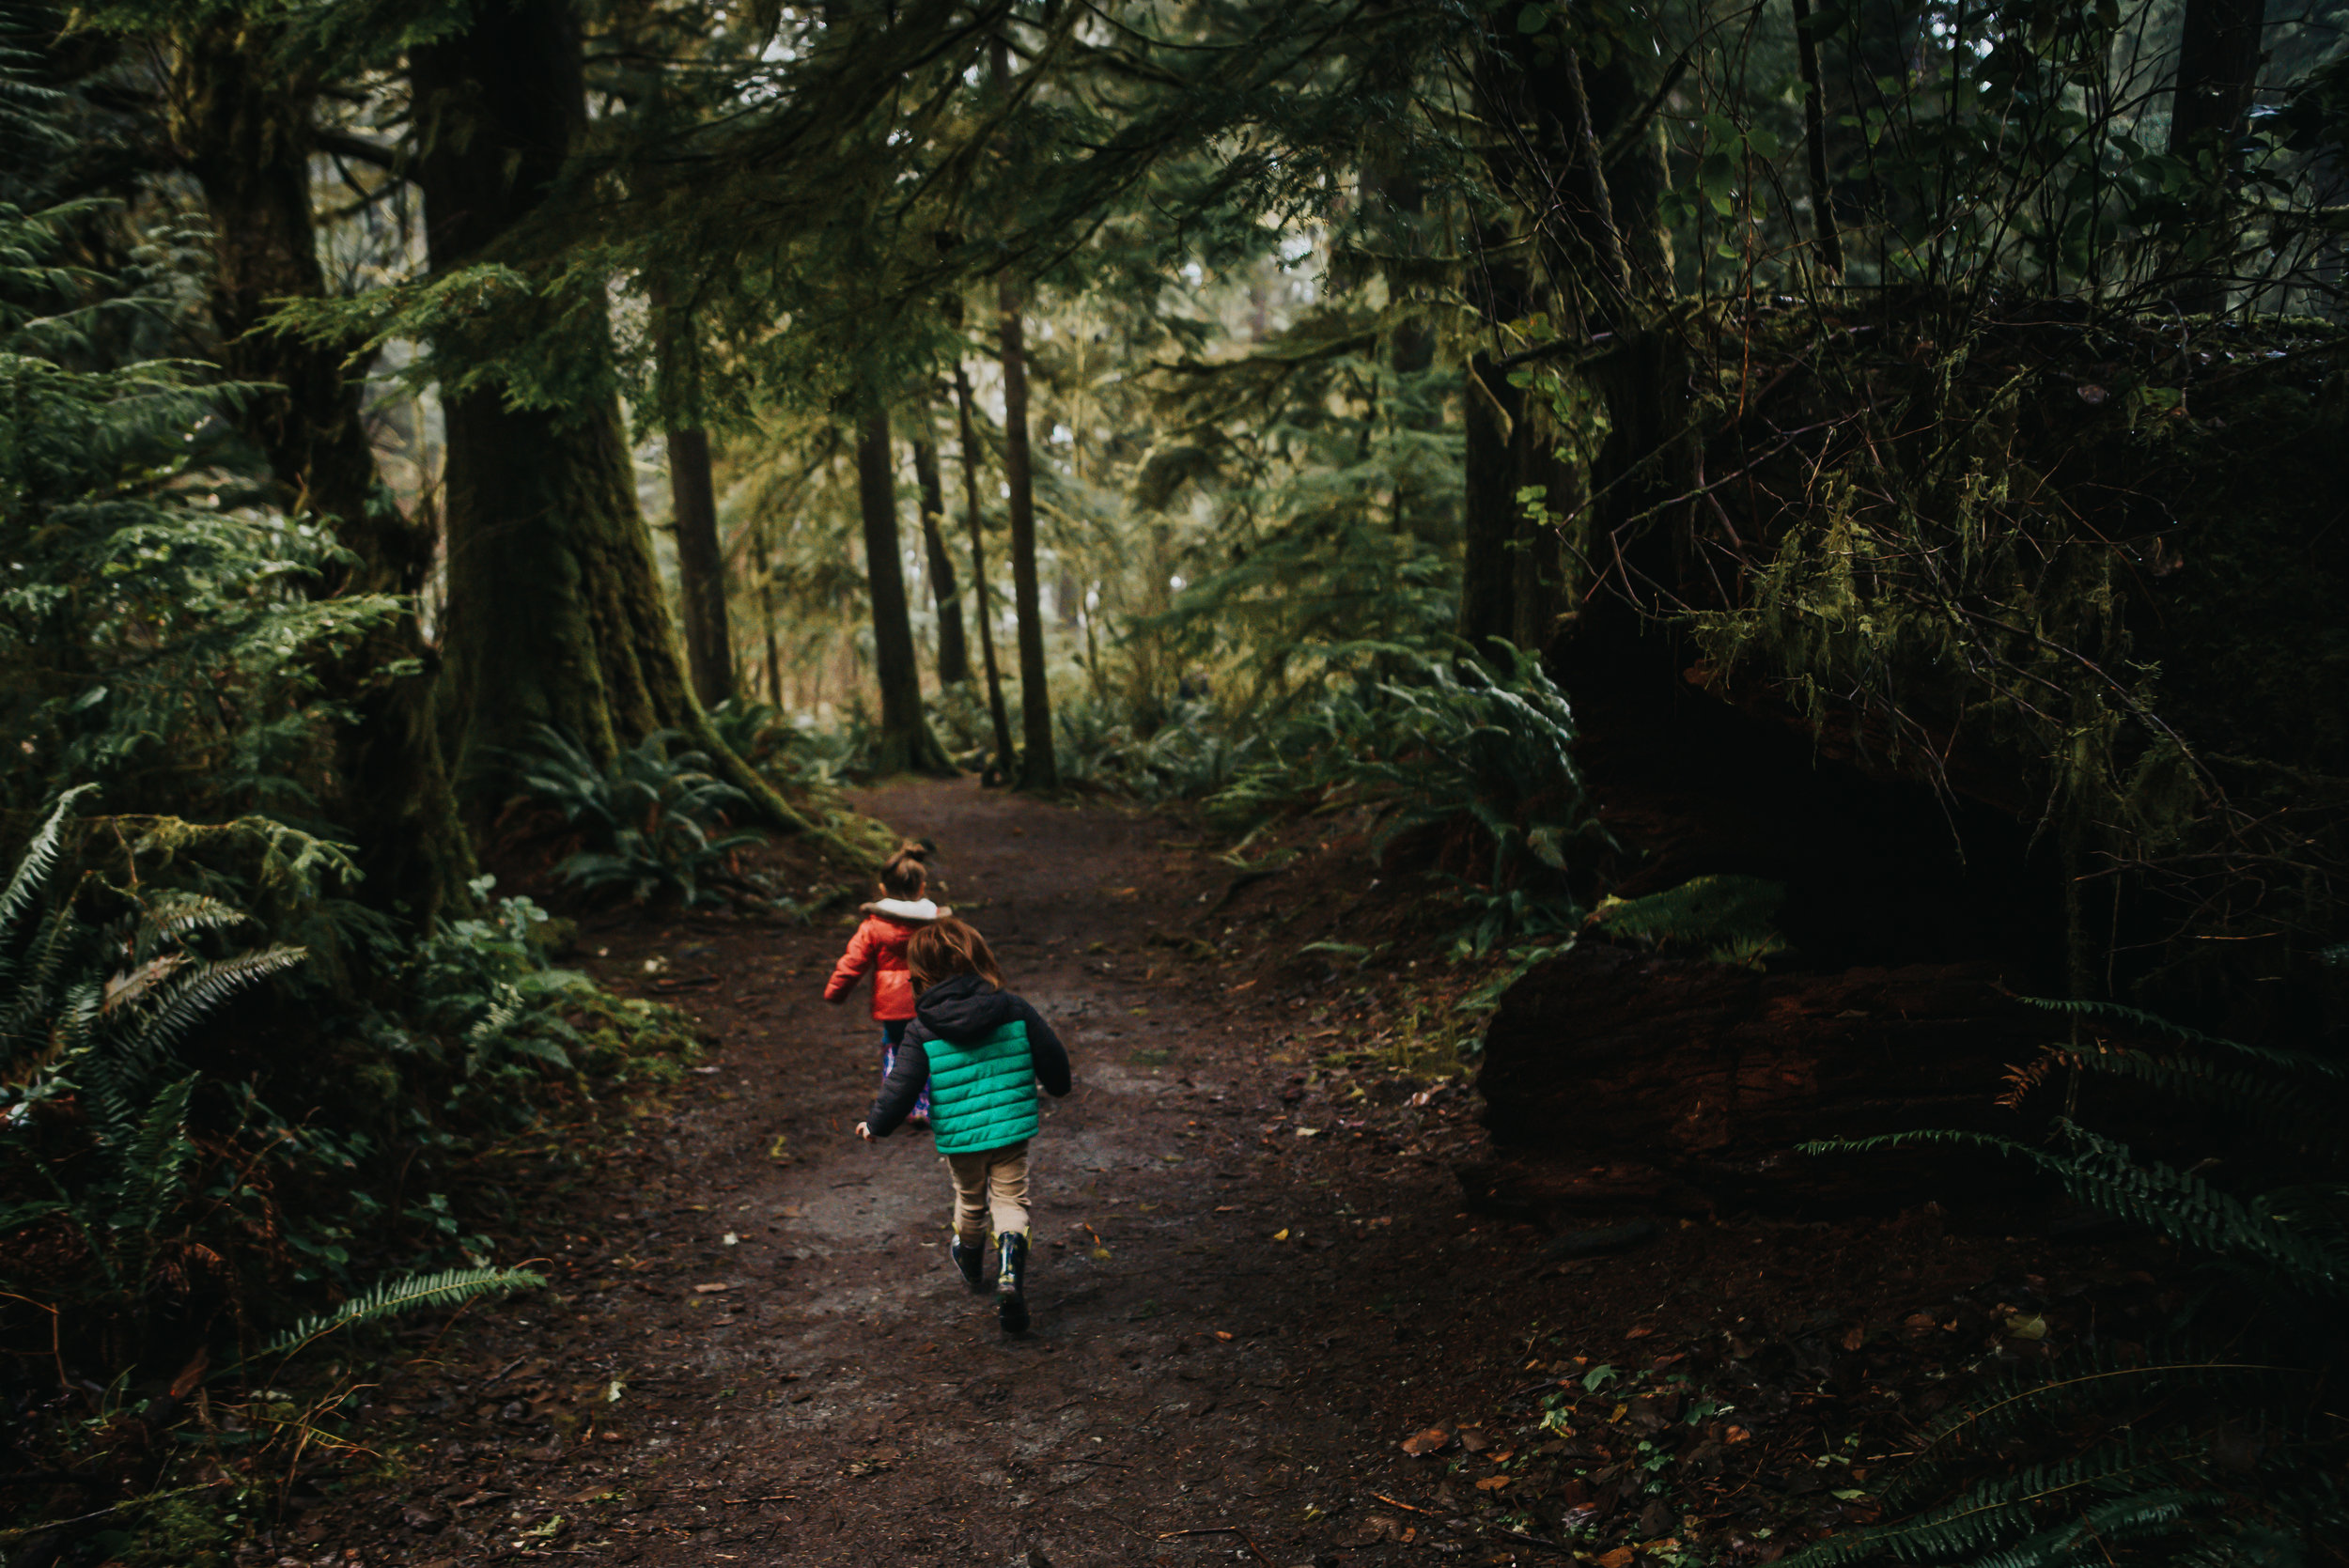 Twins play in the forest on trek down to the pacific coast in Oregon.